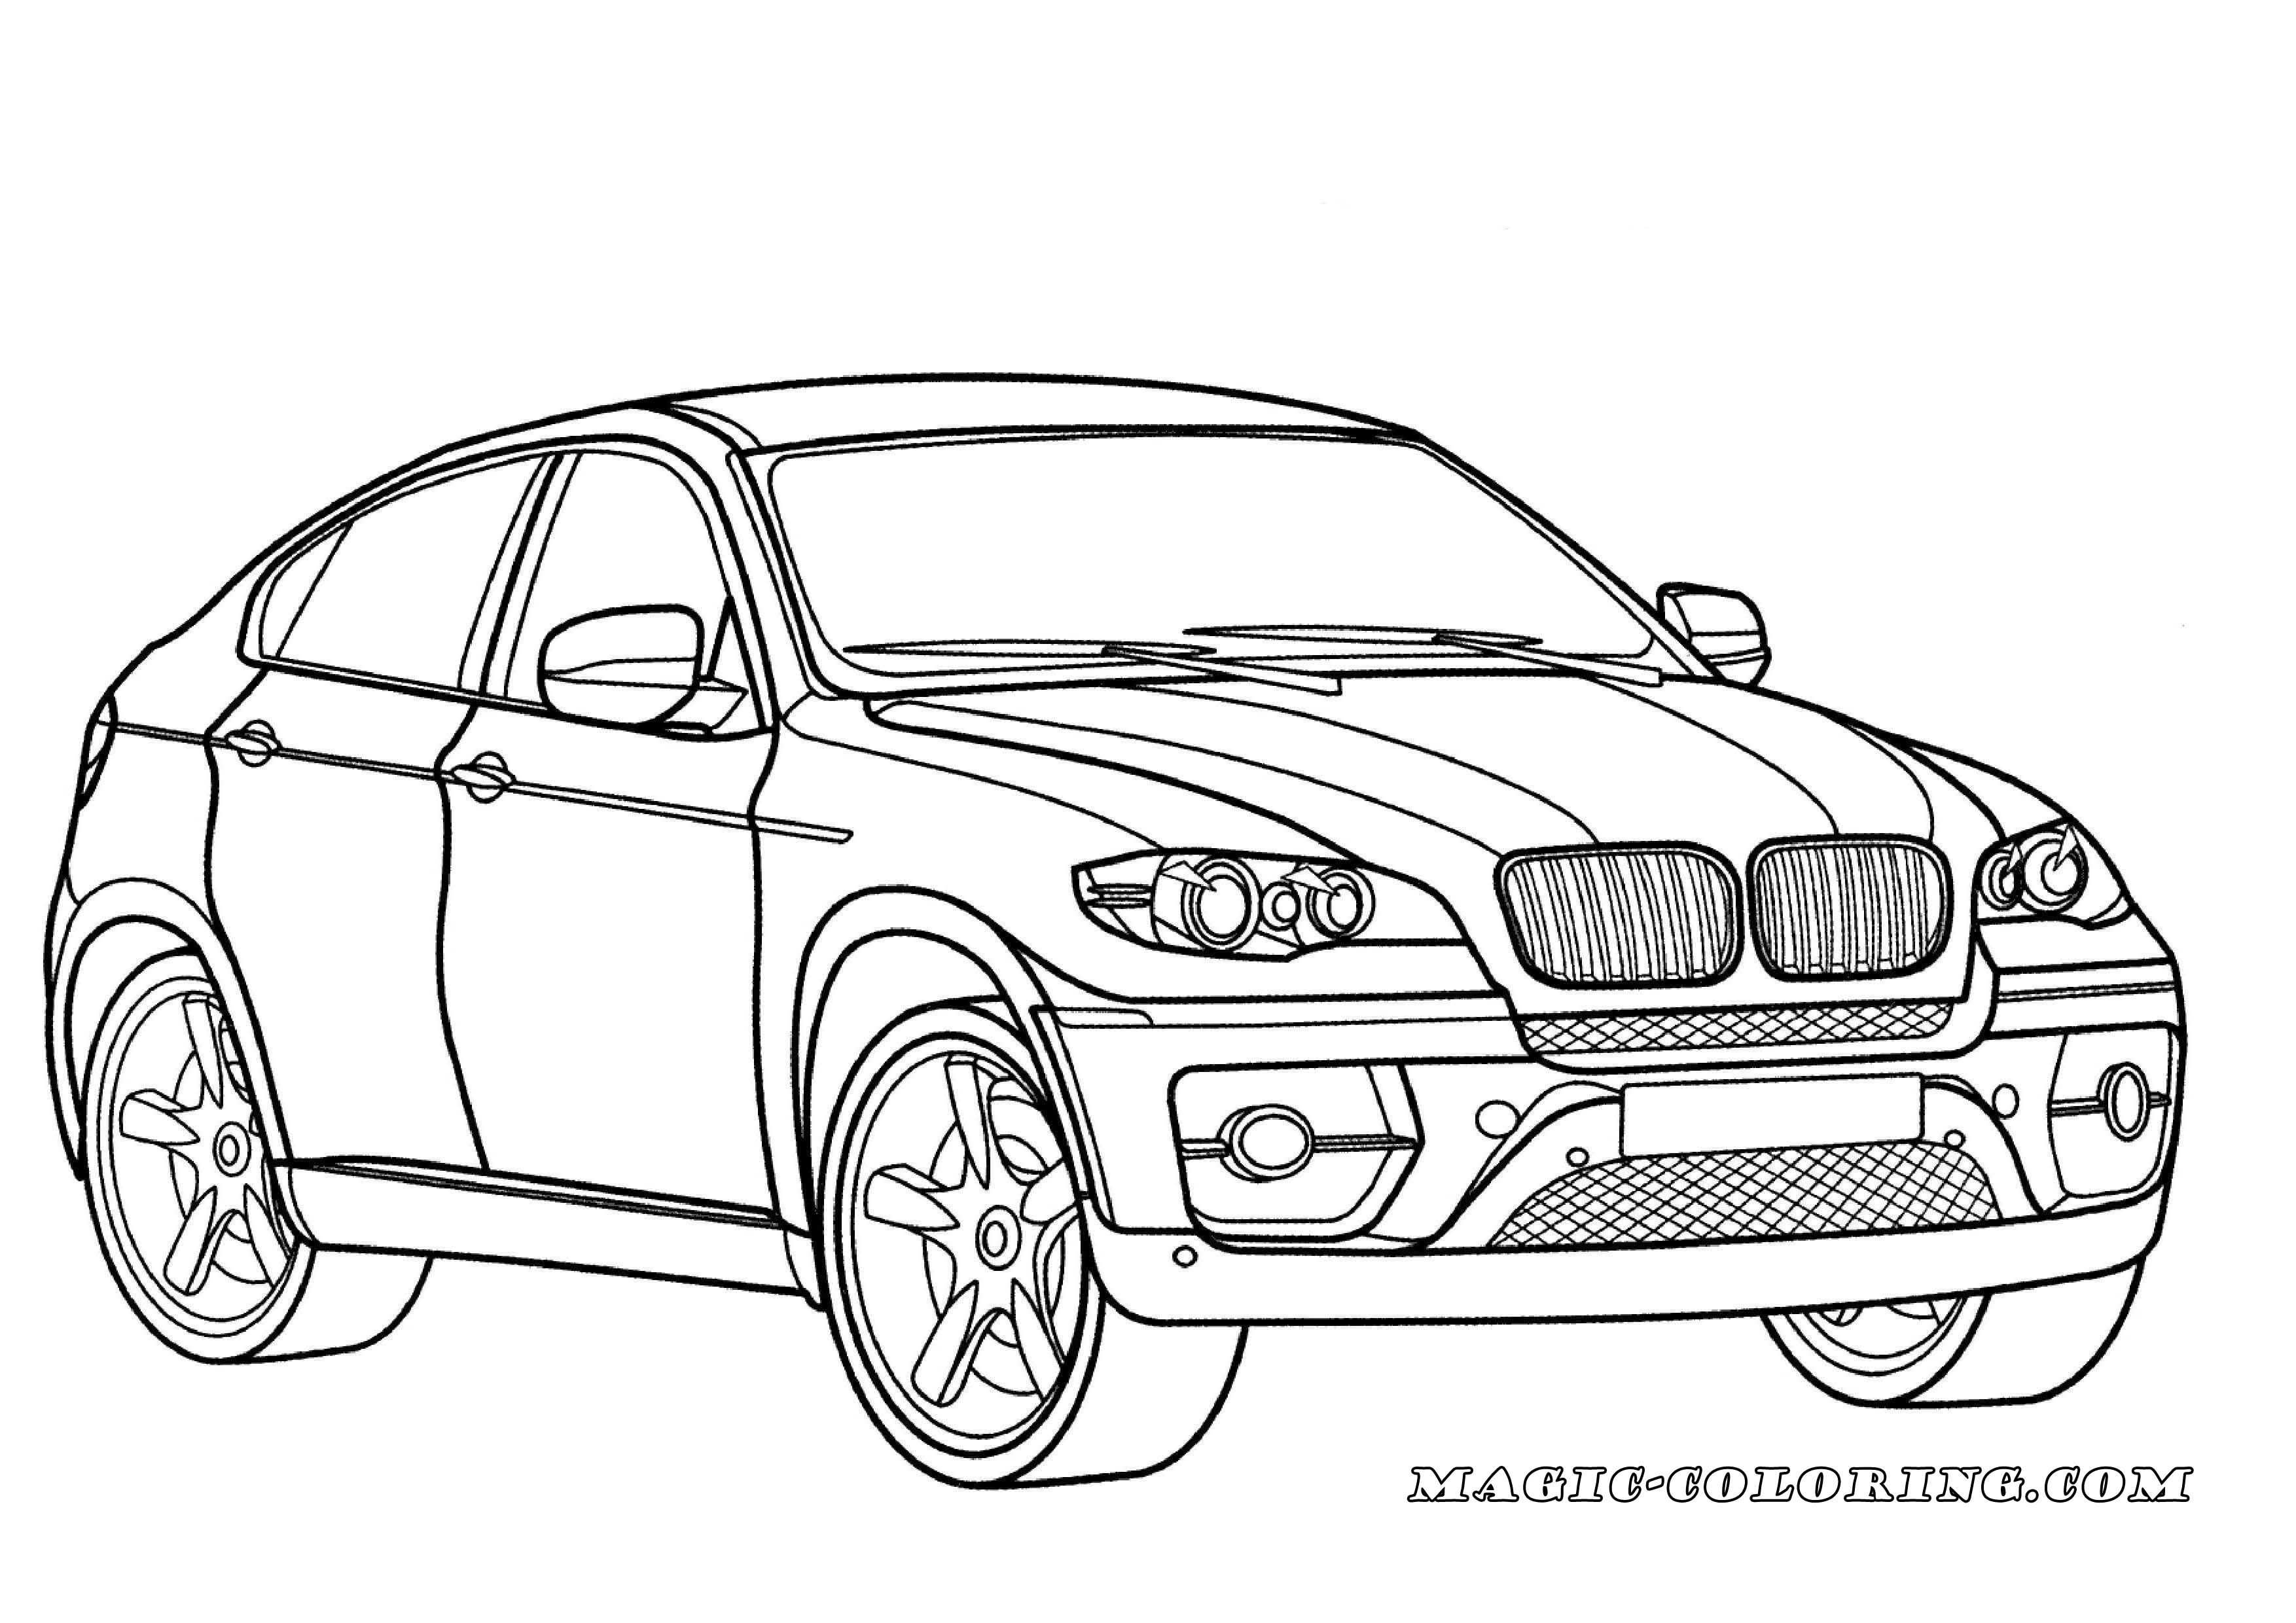 Transportation Coloring Pages Bmw Cars Coloring Pages With